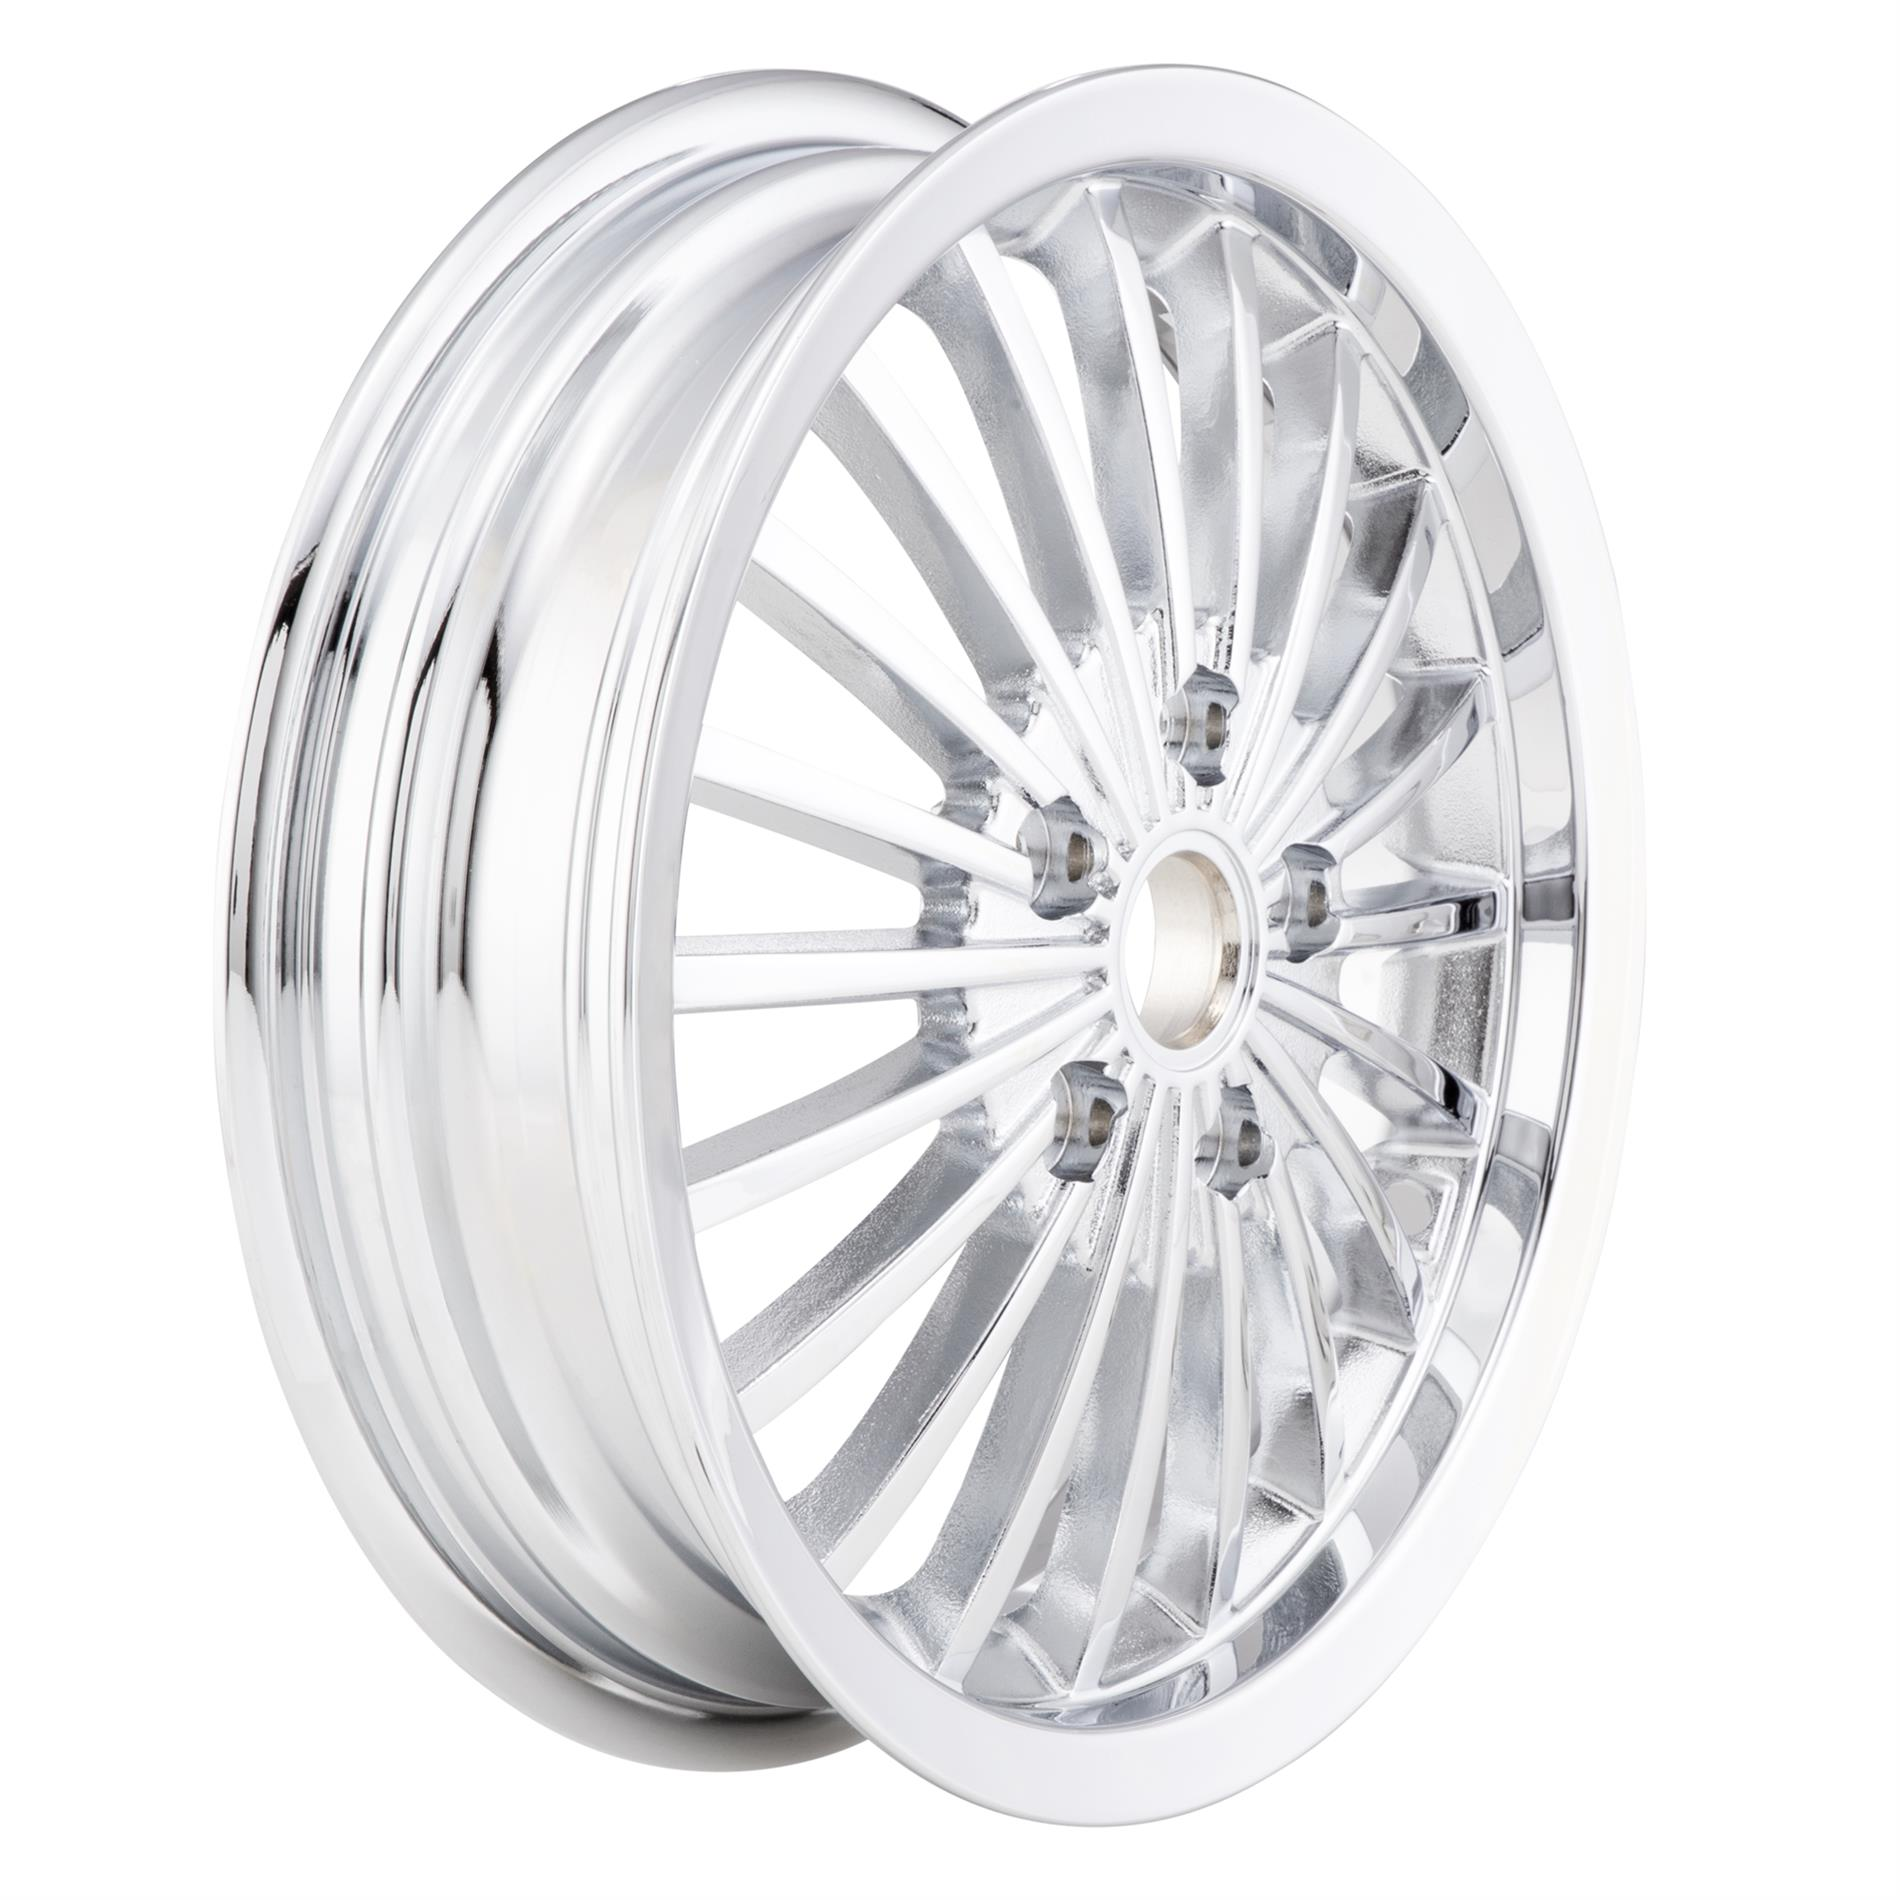 SIP Chrome Rim for Vespa GTS 125-300ccm